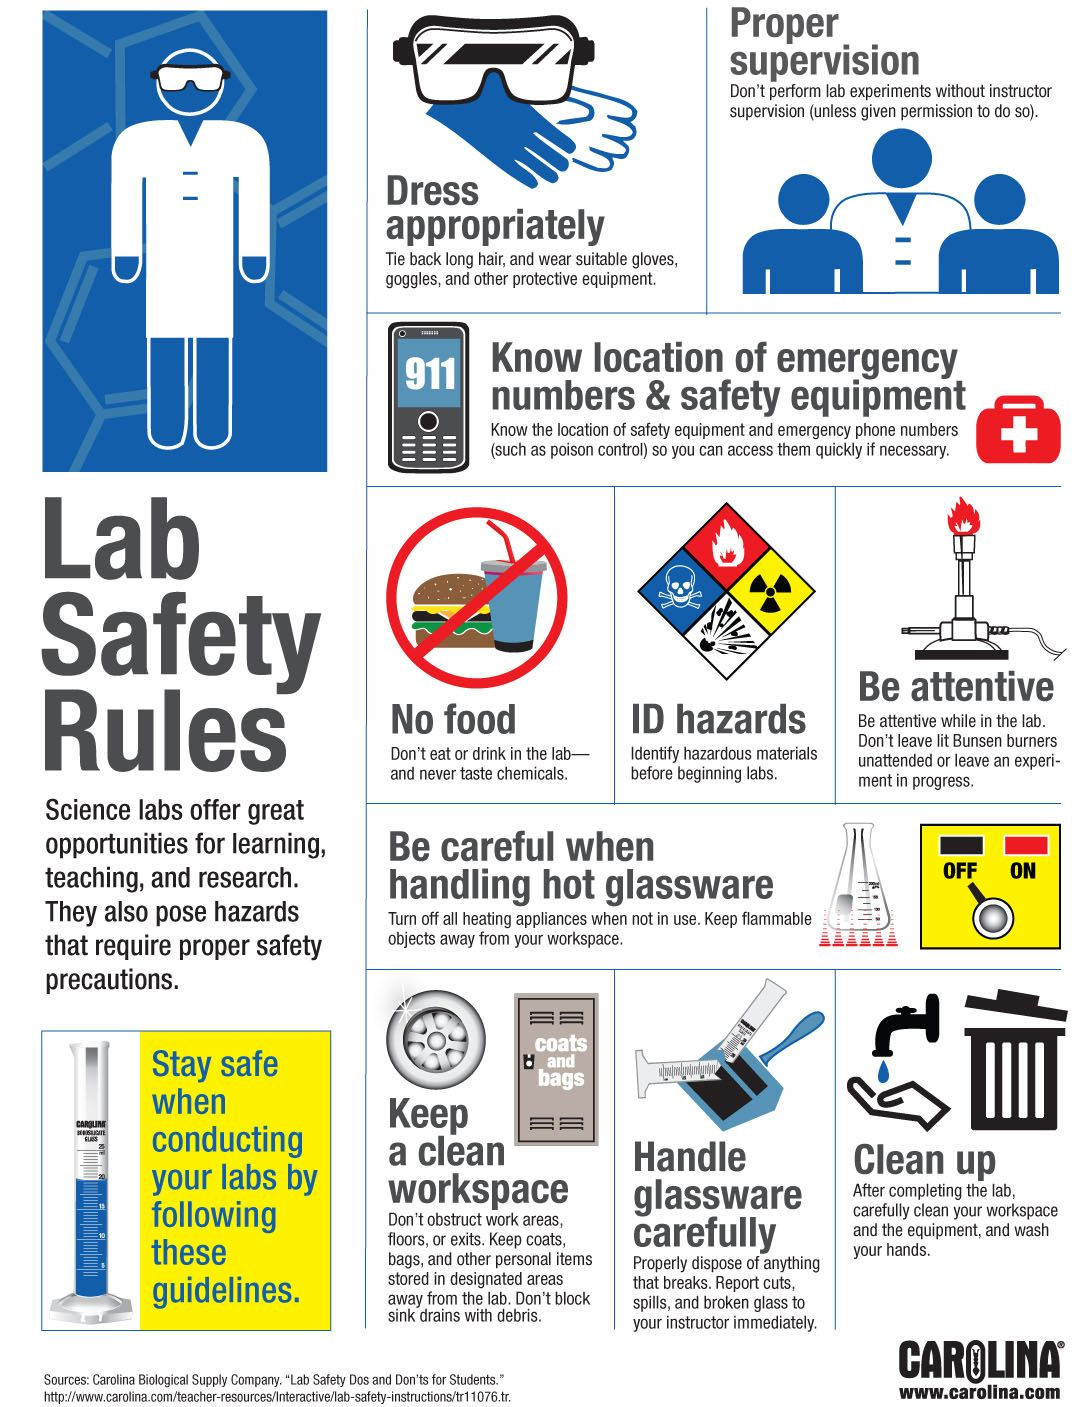 Here's a terrific infographic on lab safety. Lab safety